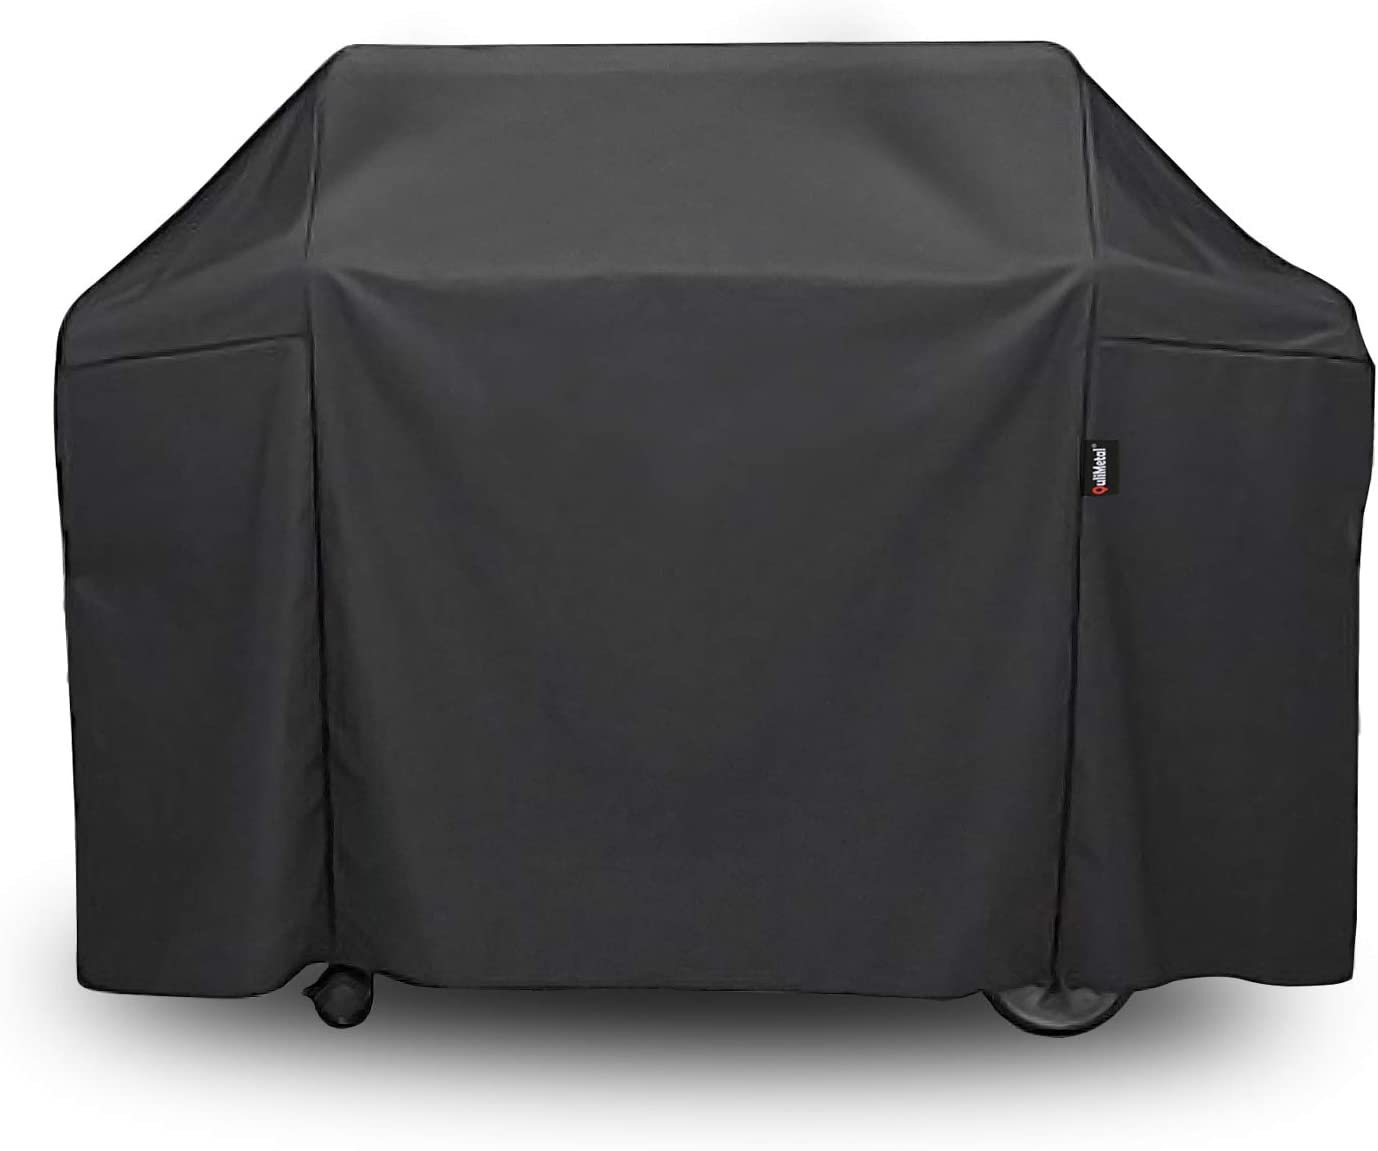 QuliMetal 7131 Grill Cover for Weber Genesis II 4 Burner Grill, 65 Inches BBQ Grill Cover for Weber Genesis II 410/435/440 Grill